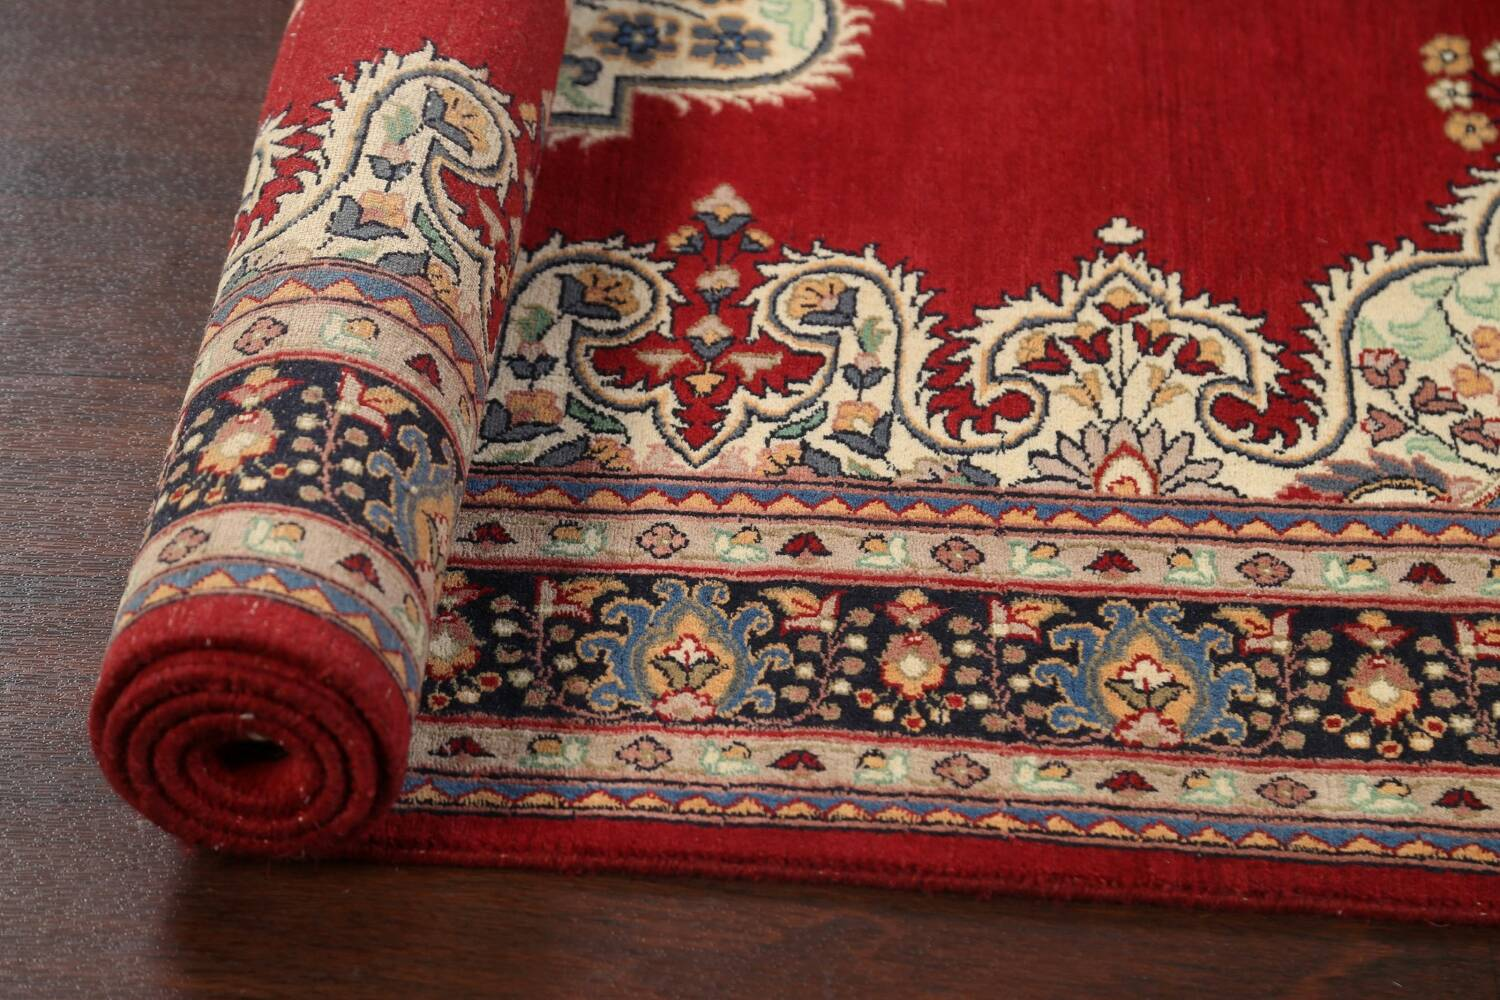 100% Vegetable Dye Red Tabriz Oriental Area Rug 5x7 image 14